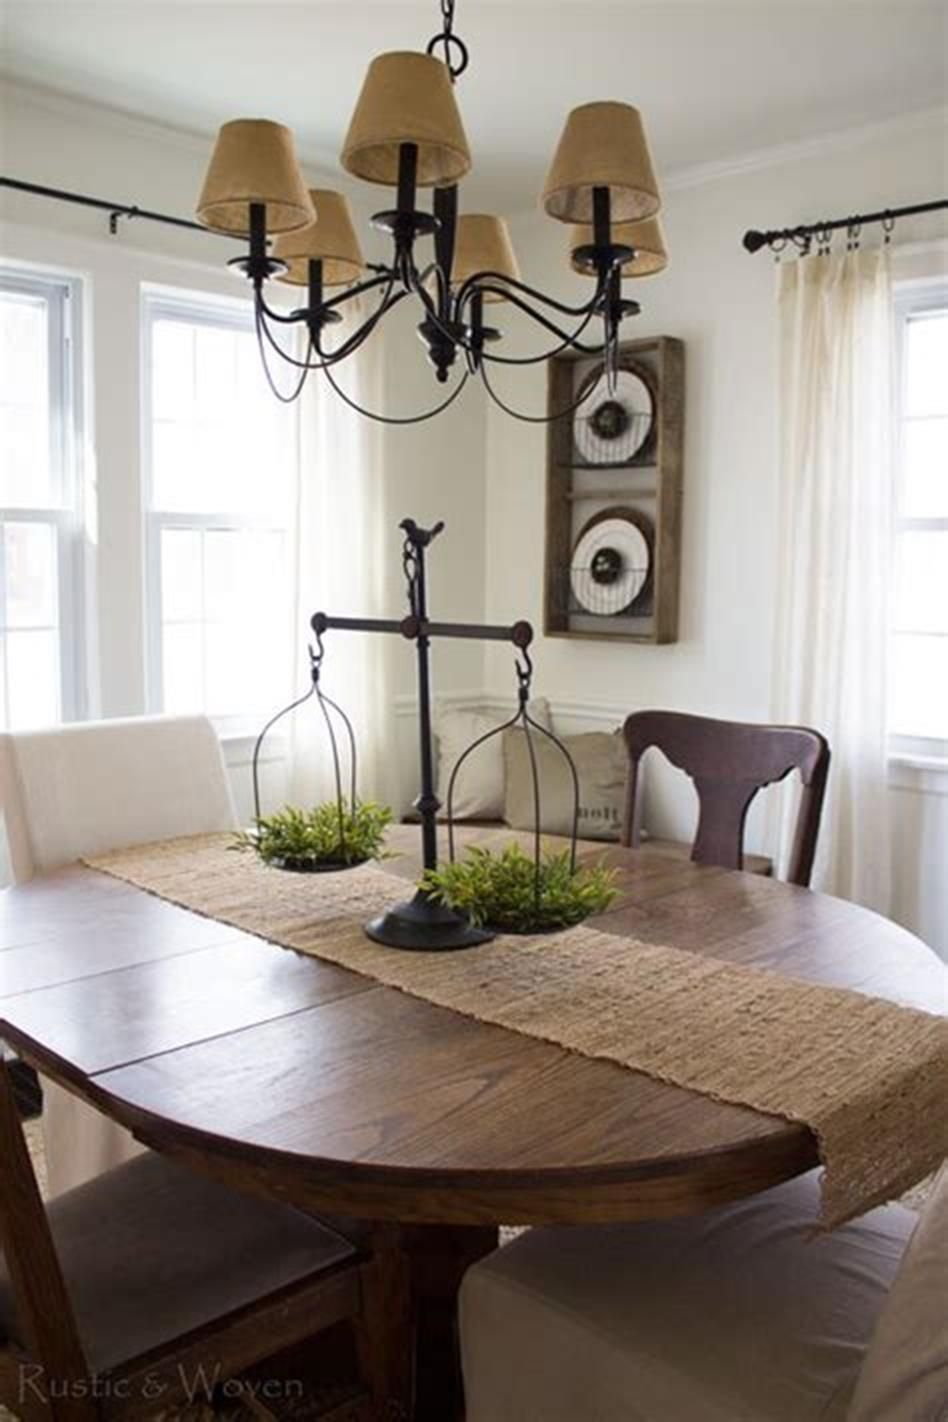 37 Beautiful Farmhouse Spring Decorating Ideas On A Budget For 2